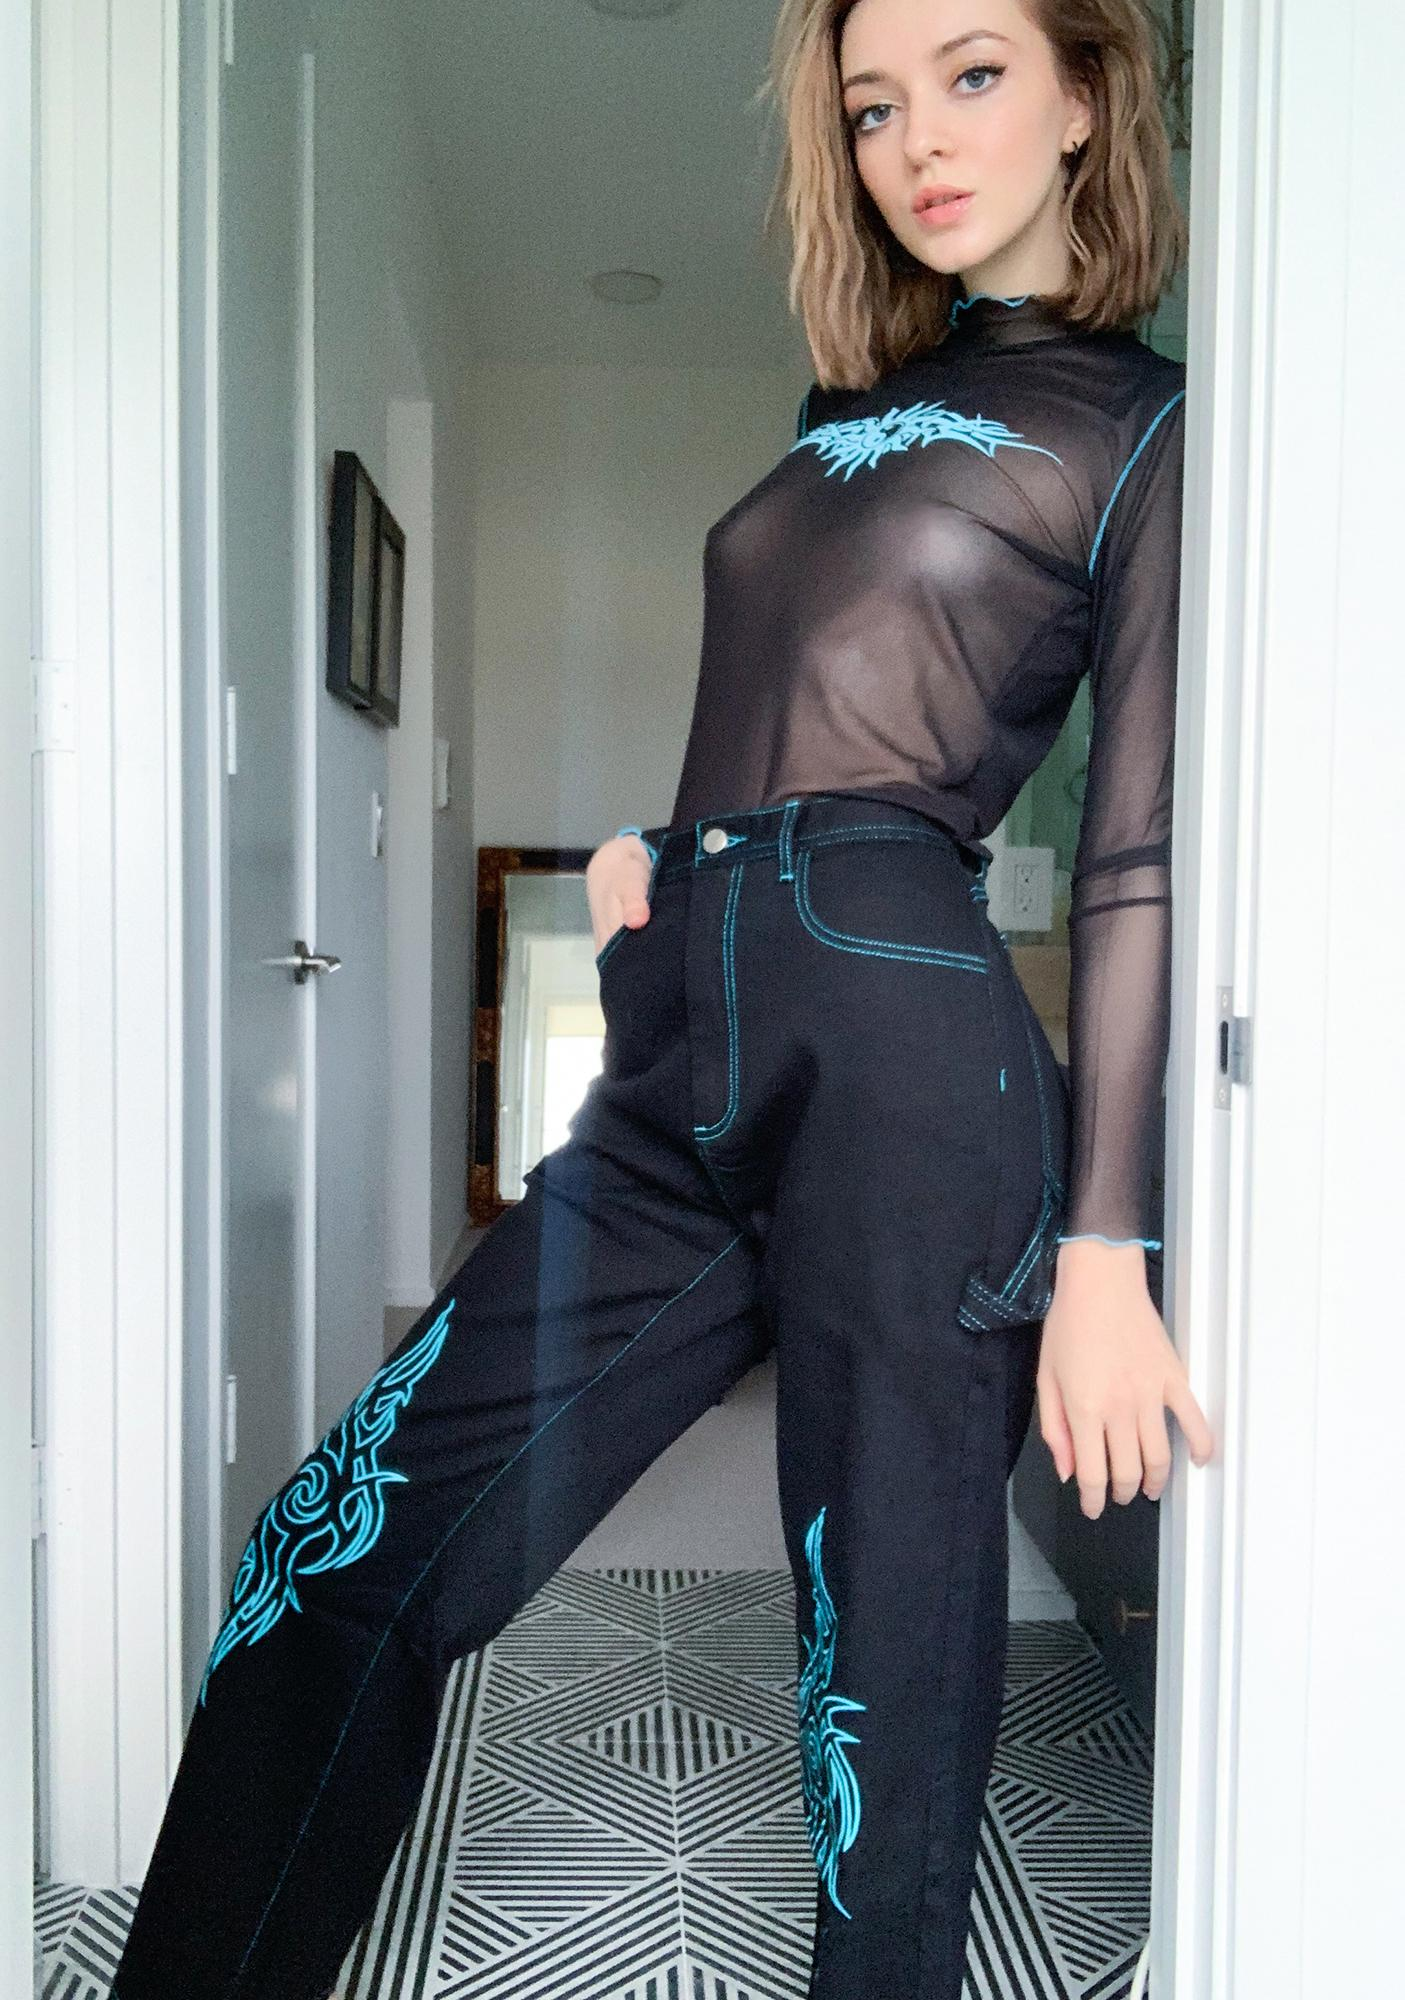 HOROSCOPEZ Talkin' Tough Wide Leg Pants